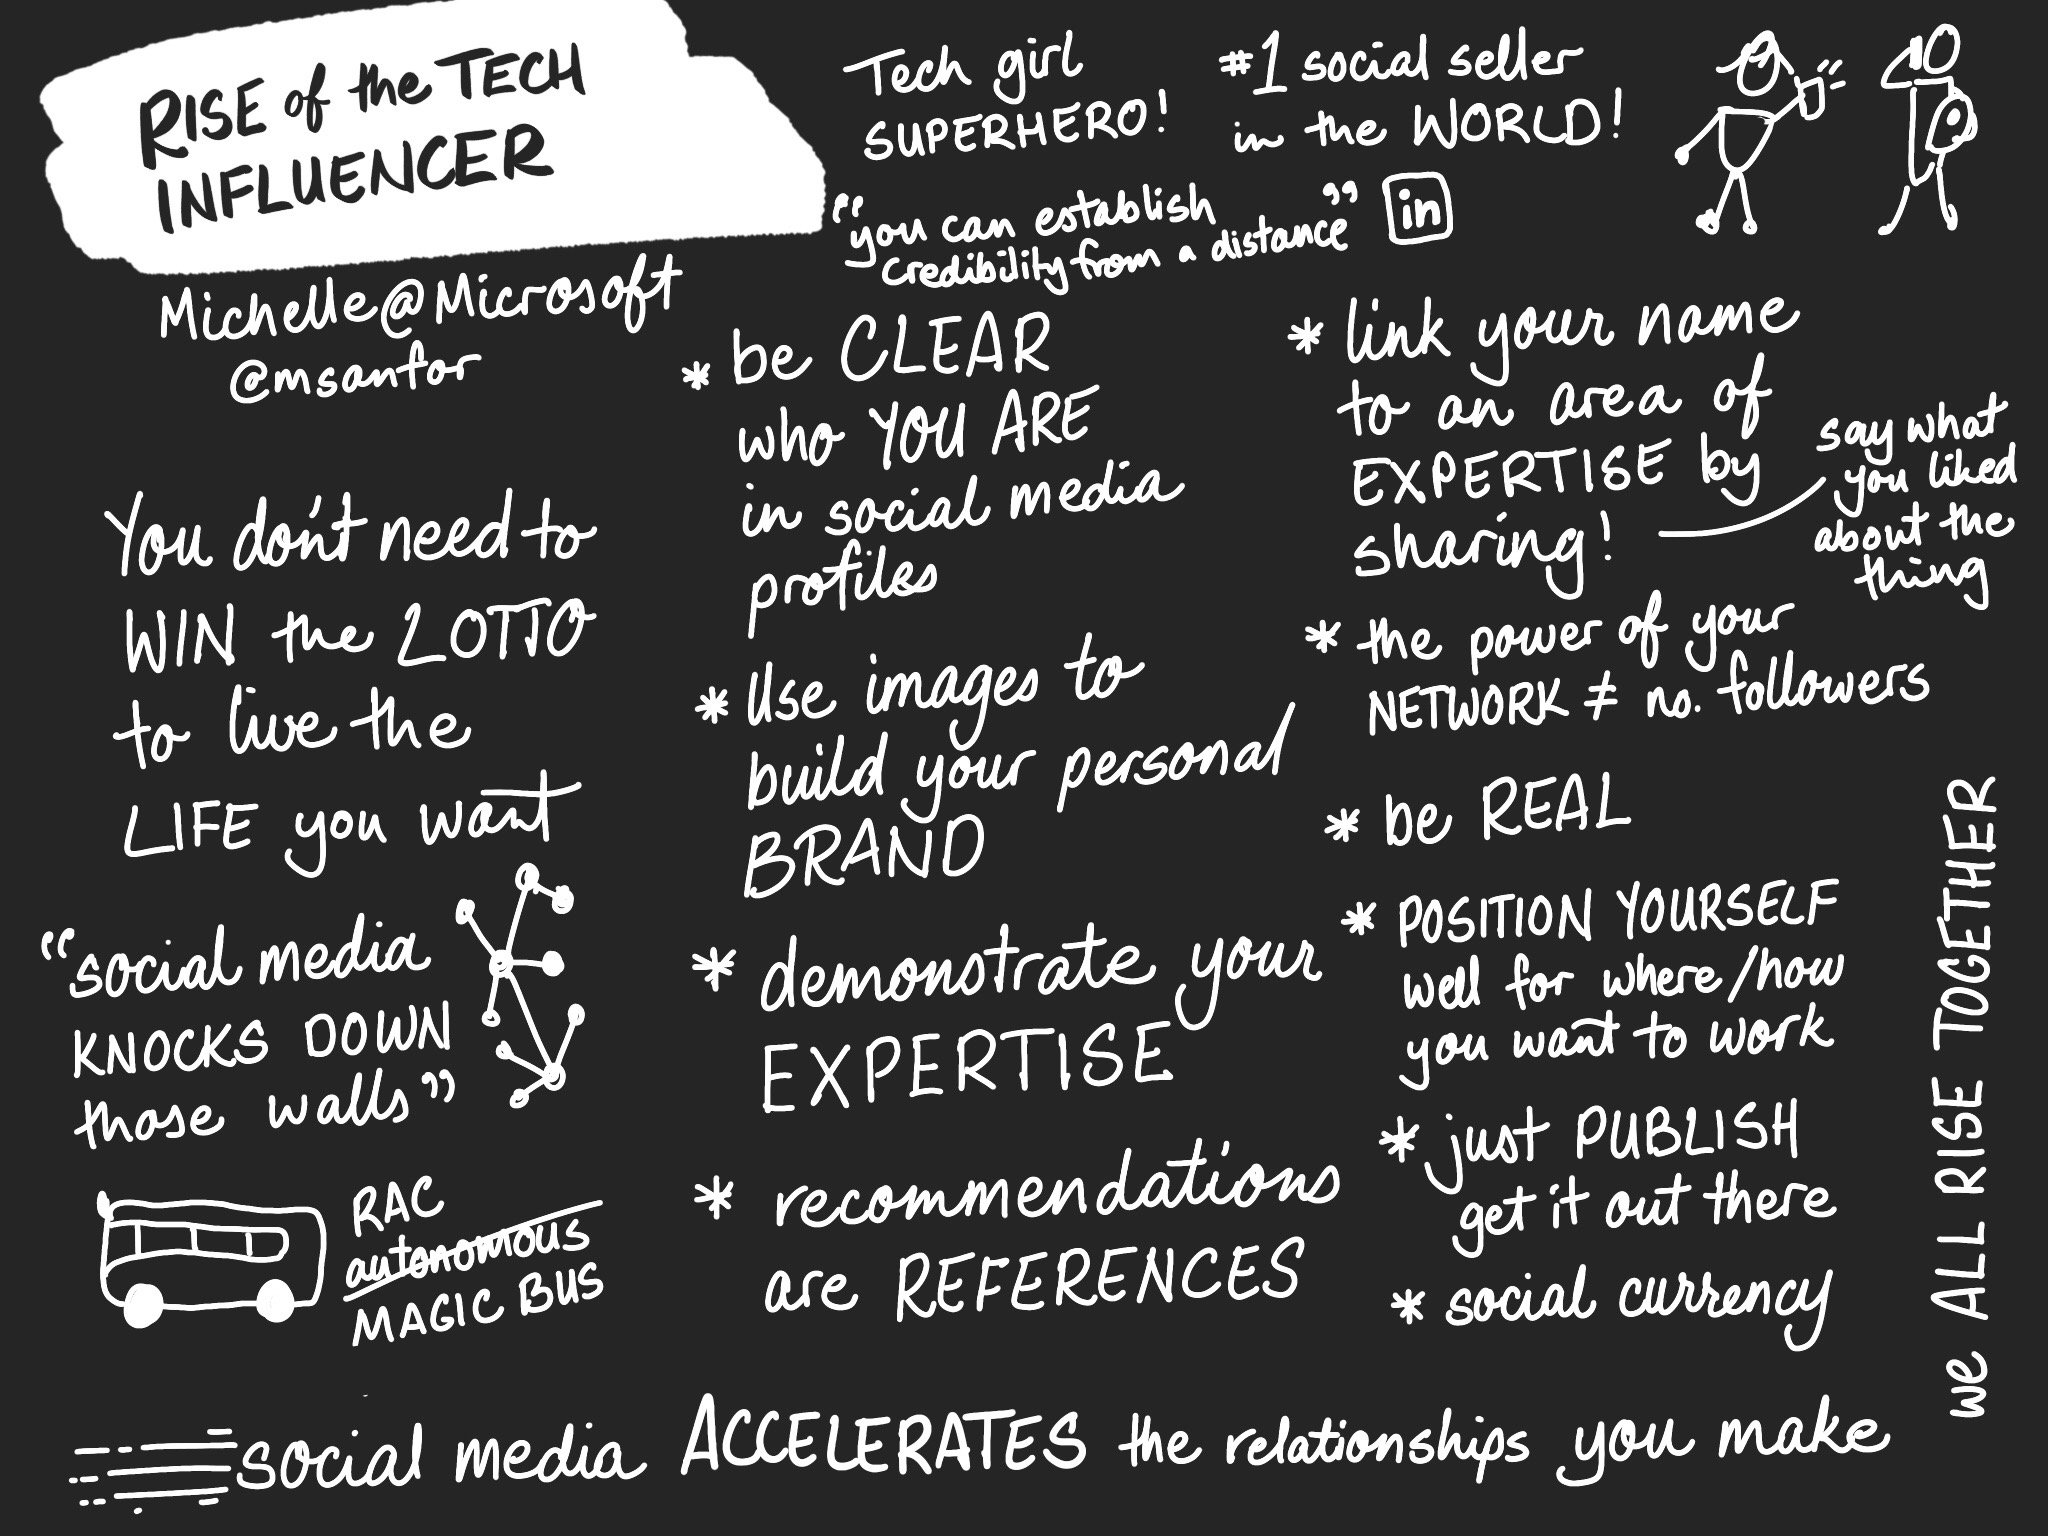 Sketchnote of the talk Rise of the tech influencer